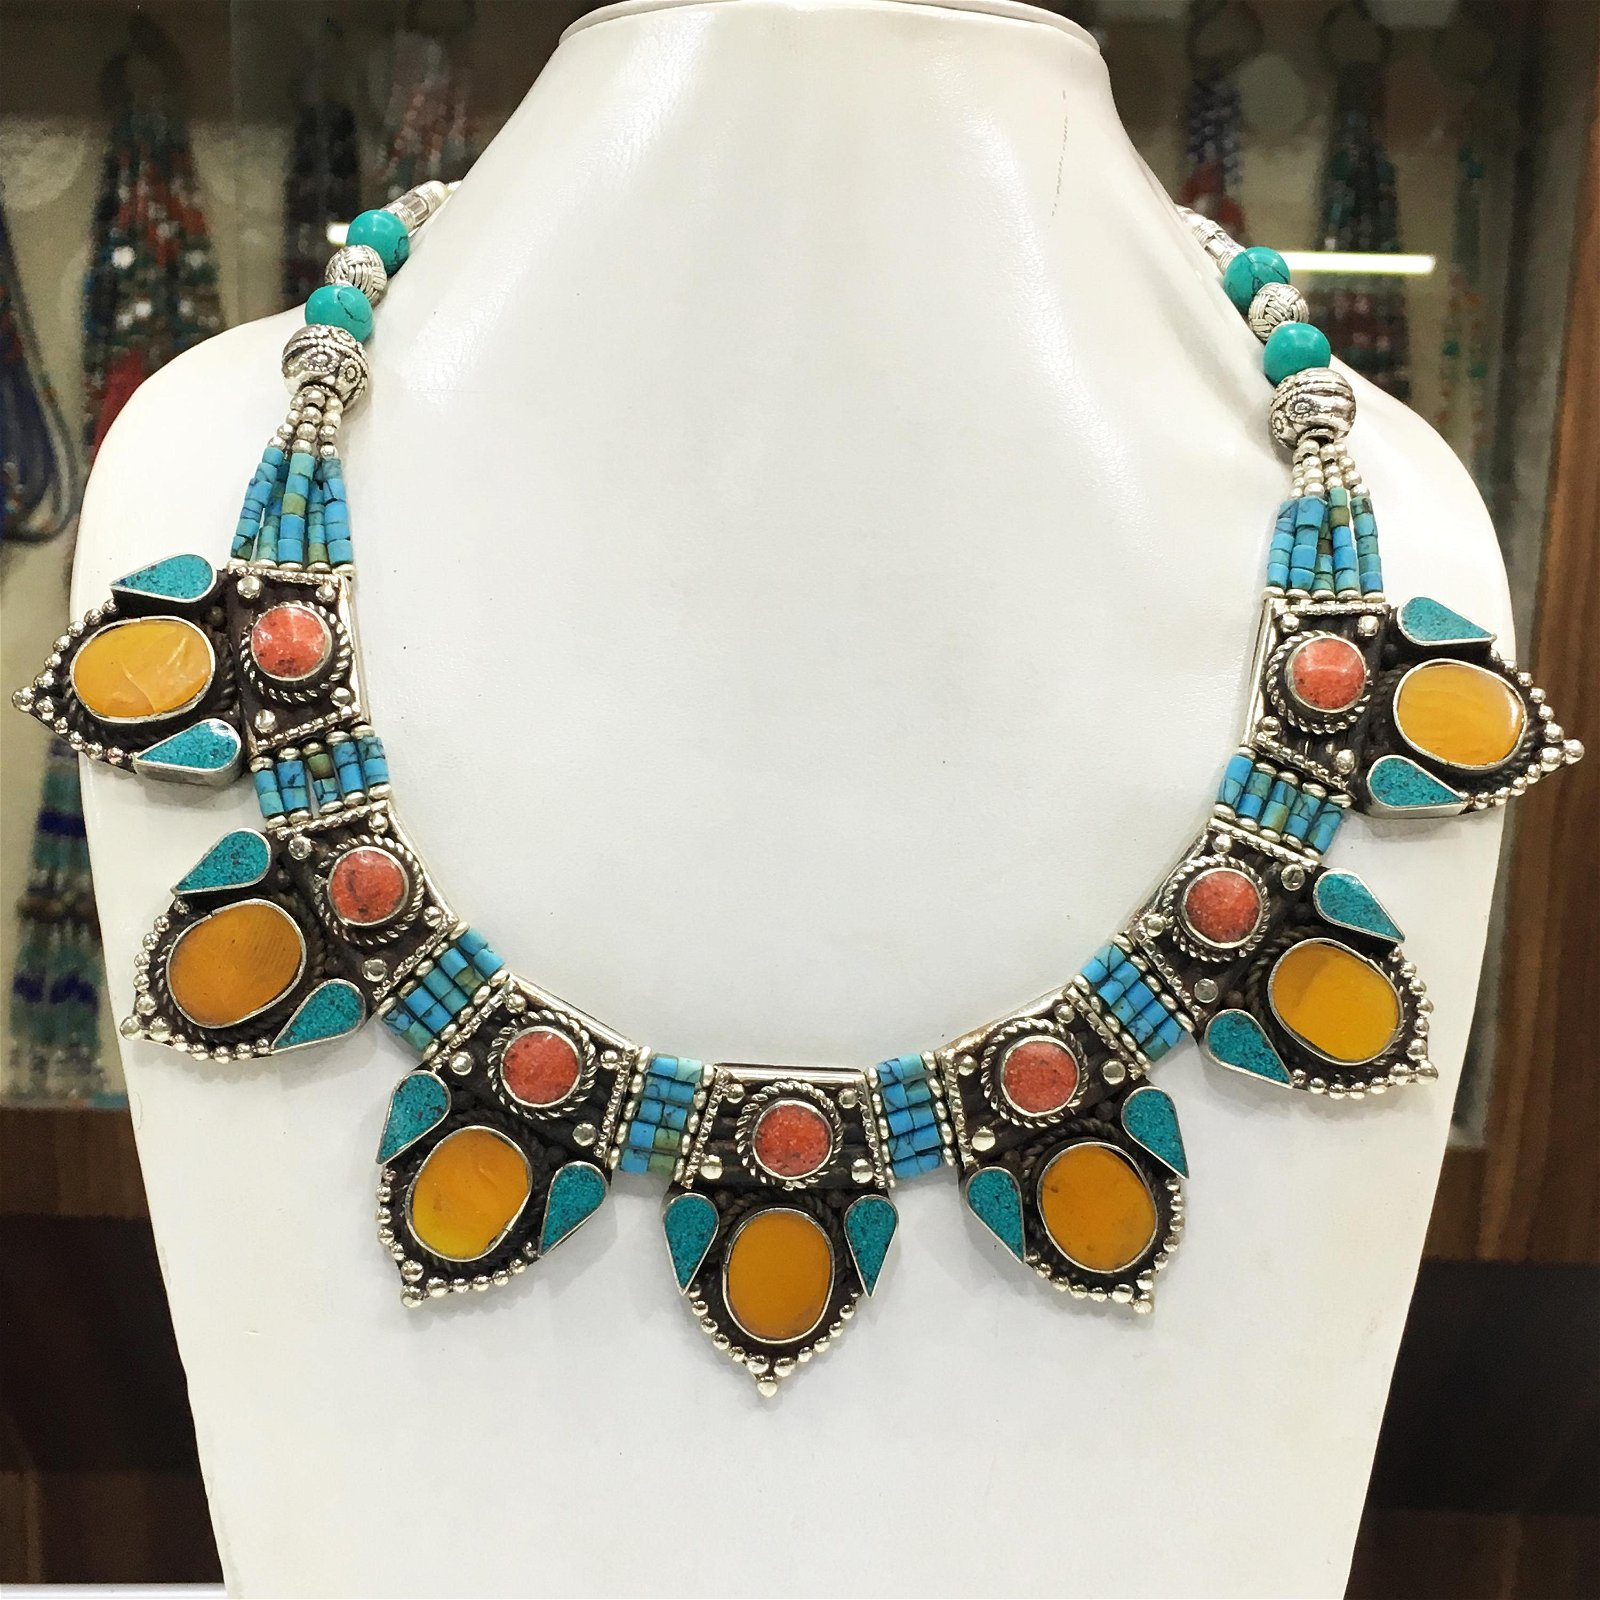 Tibetan Natural Turquoise & Amber Handmade Necklace